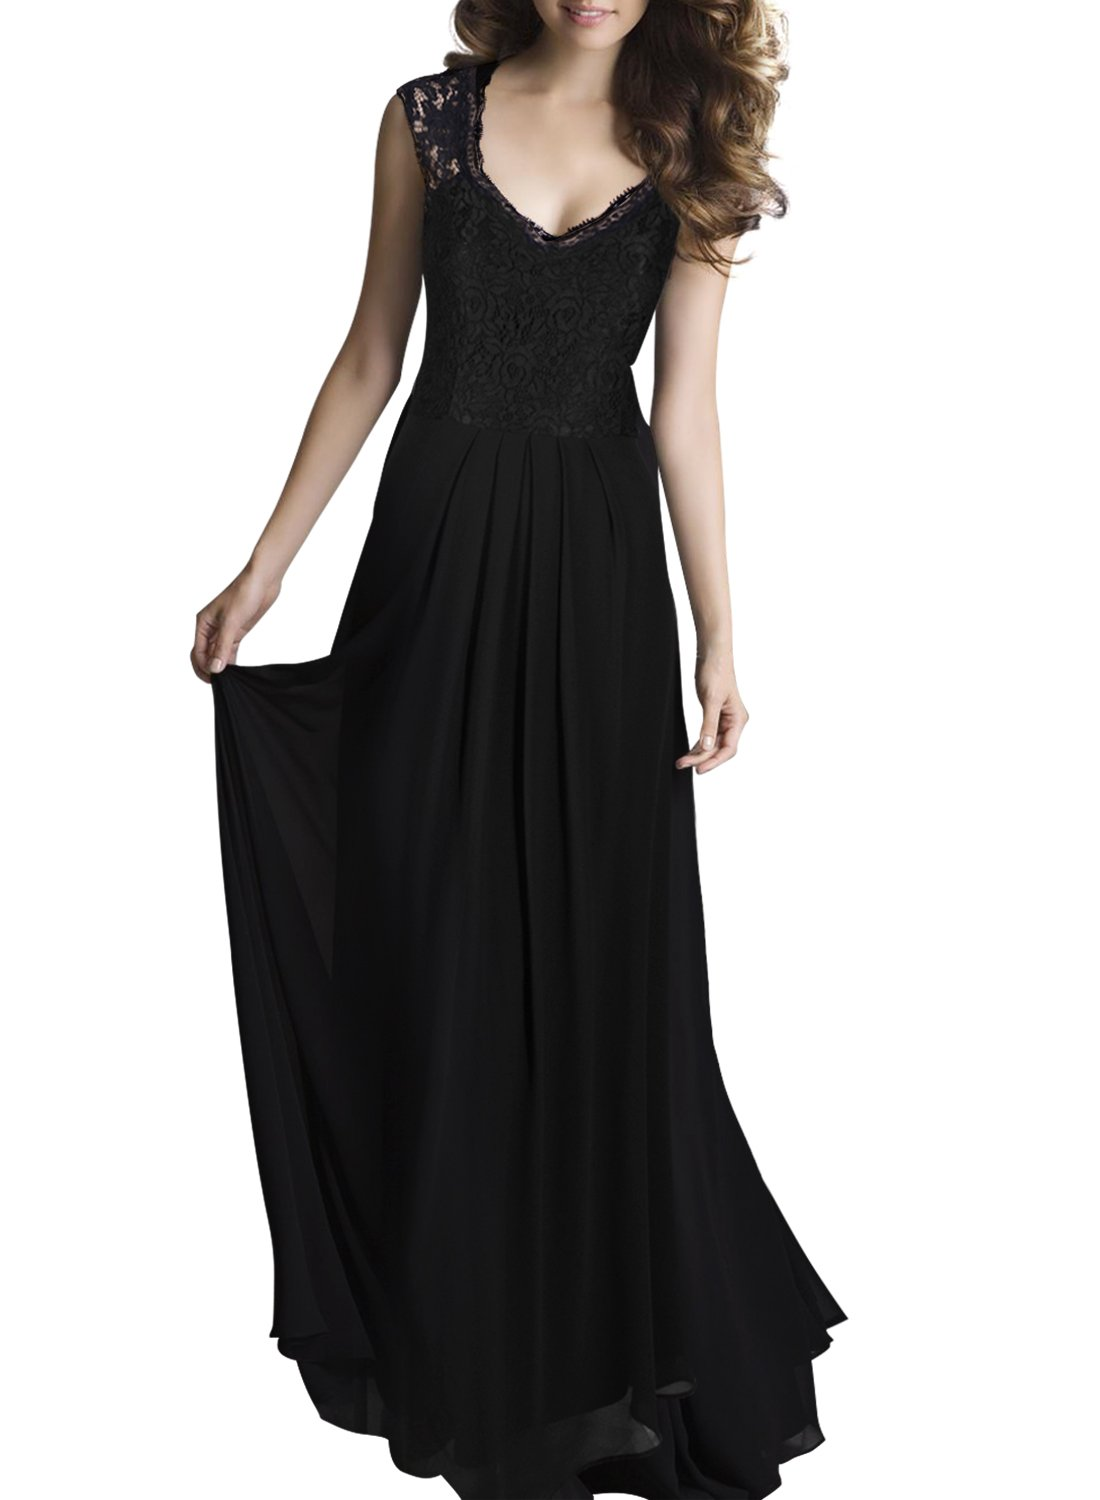 Shengdilu Women's Ball Gown Prom Maxi Long Evening Formal Party Wedding Bridesmaid Dress S Black